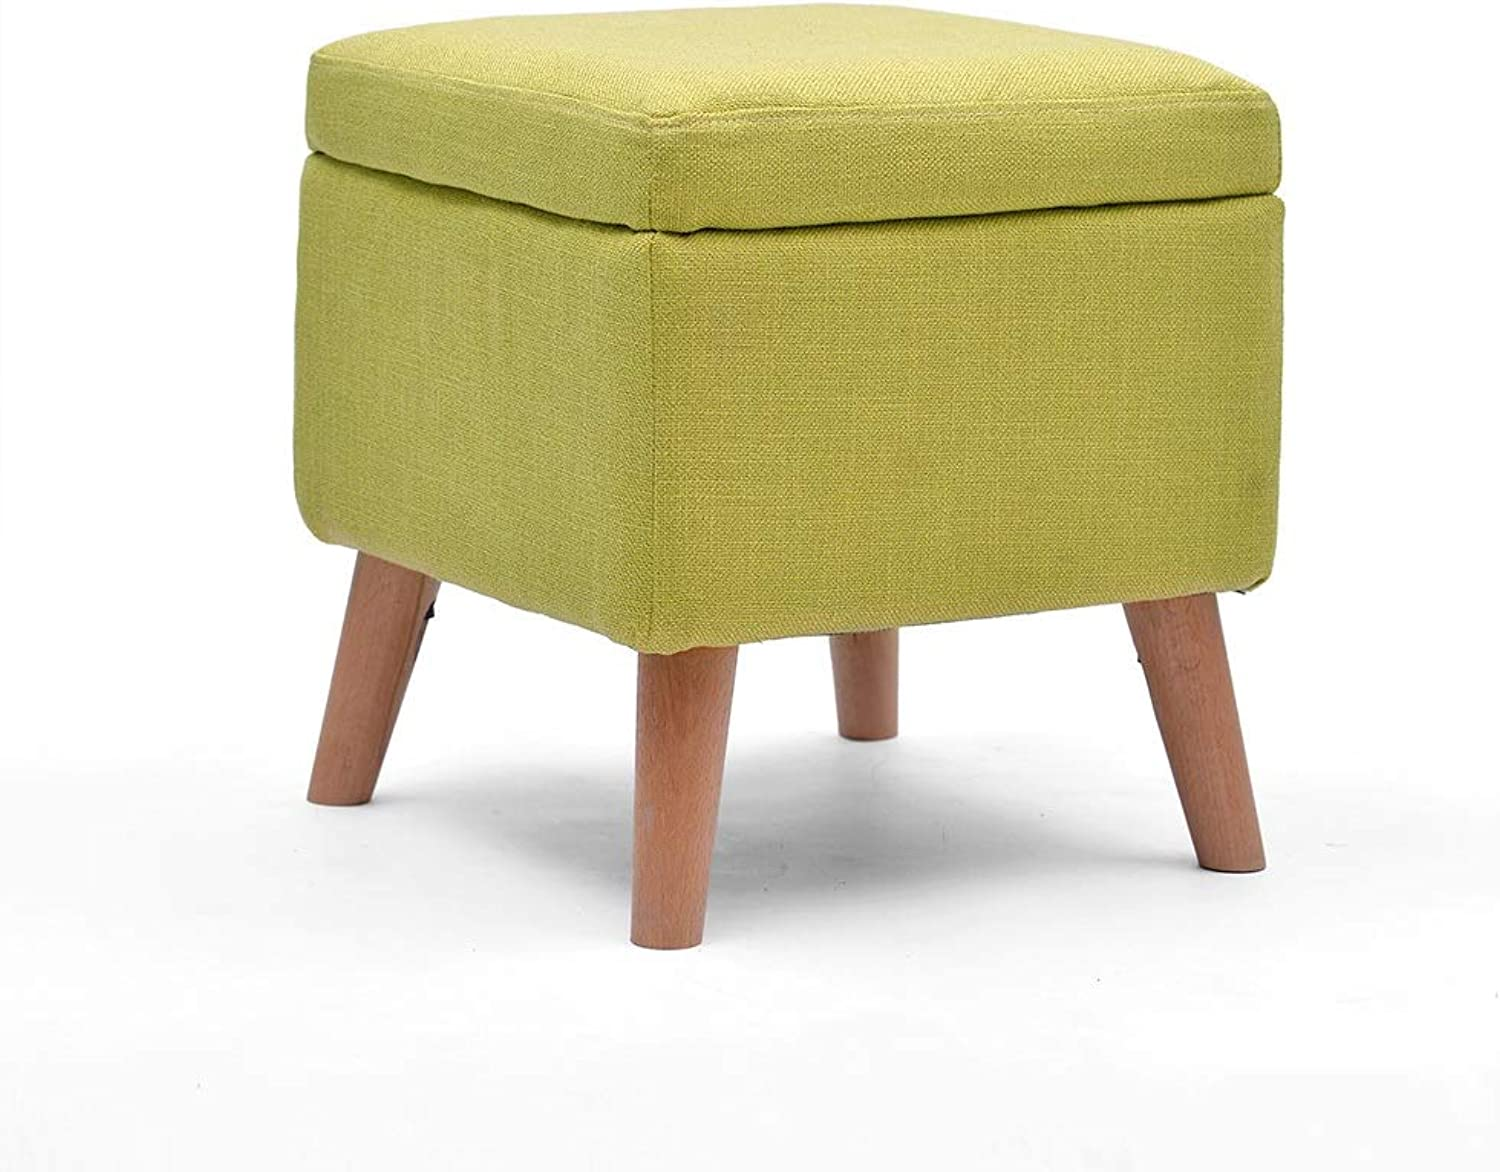 Boosc Simple Soft Footstool Rest Cube Storage Boxes Salon Taburete Stools Chair 4 Wooden Legs for Living Room Bedroom Vintage Dressing Table Large Seat Stool (color   Storage, Size   Matcha)